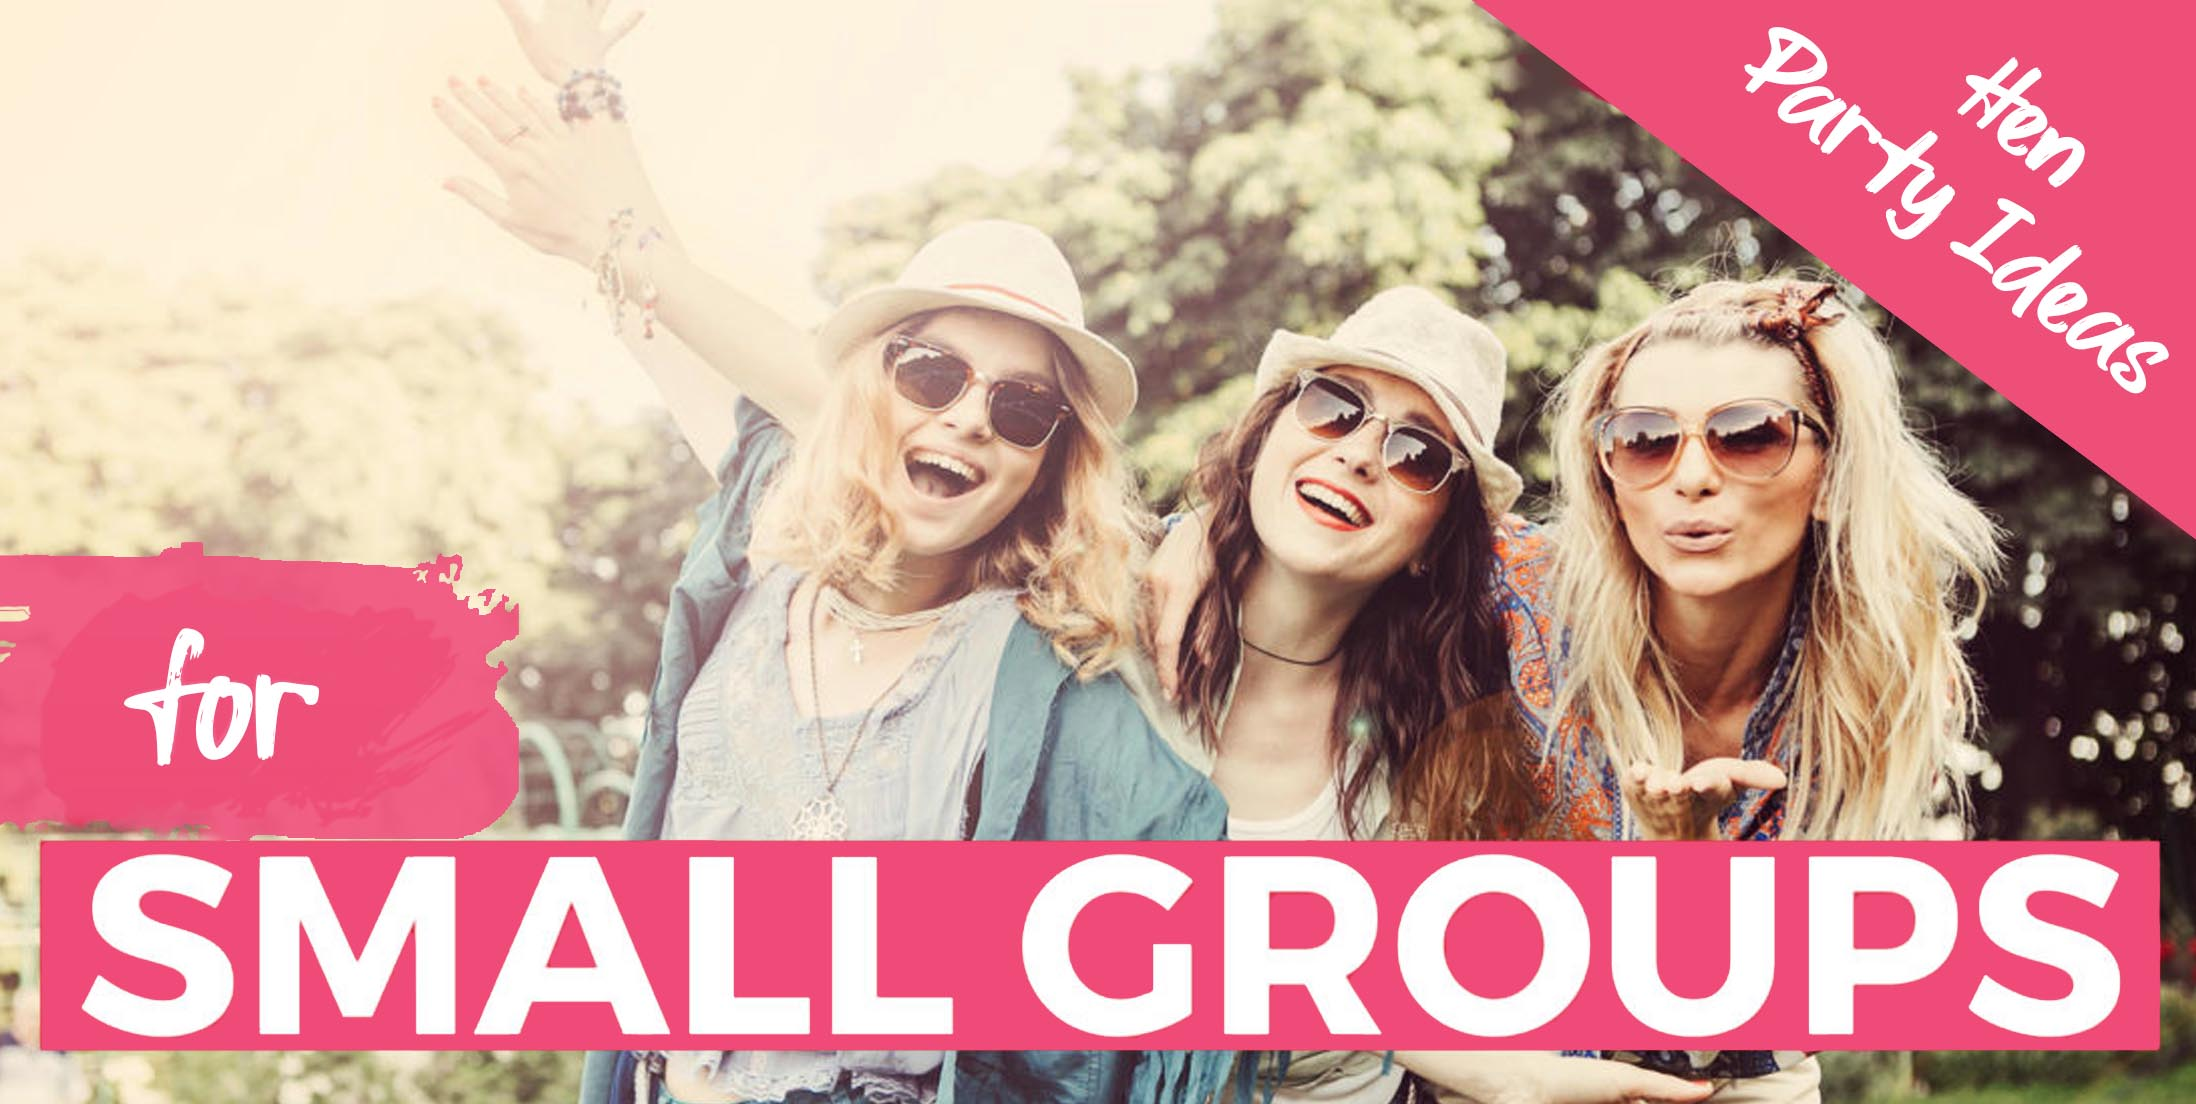 Hen party ideas for small groups